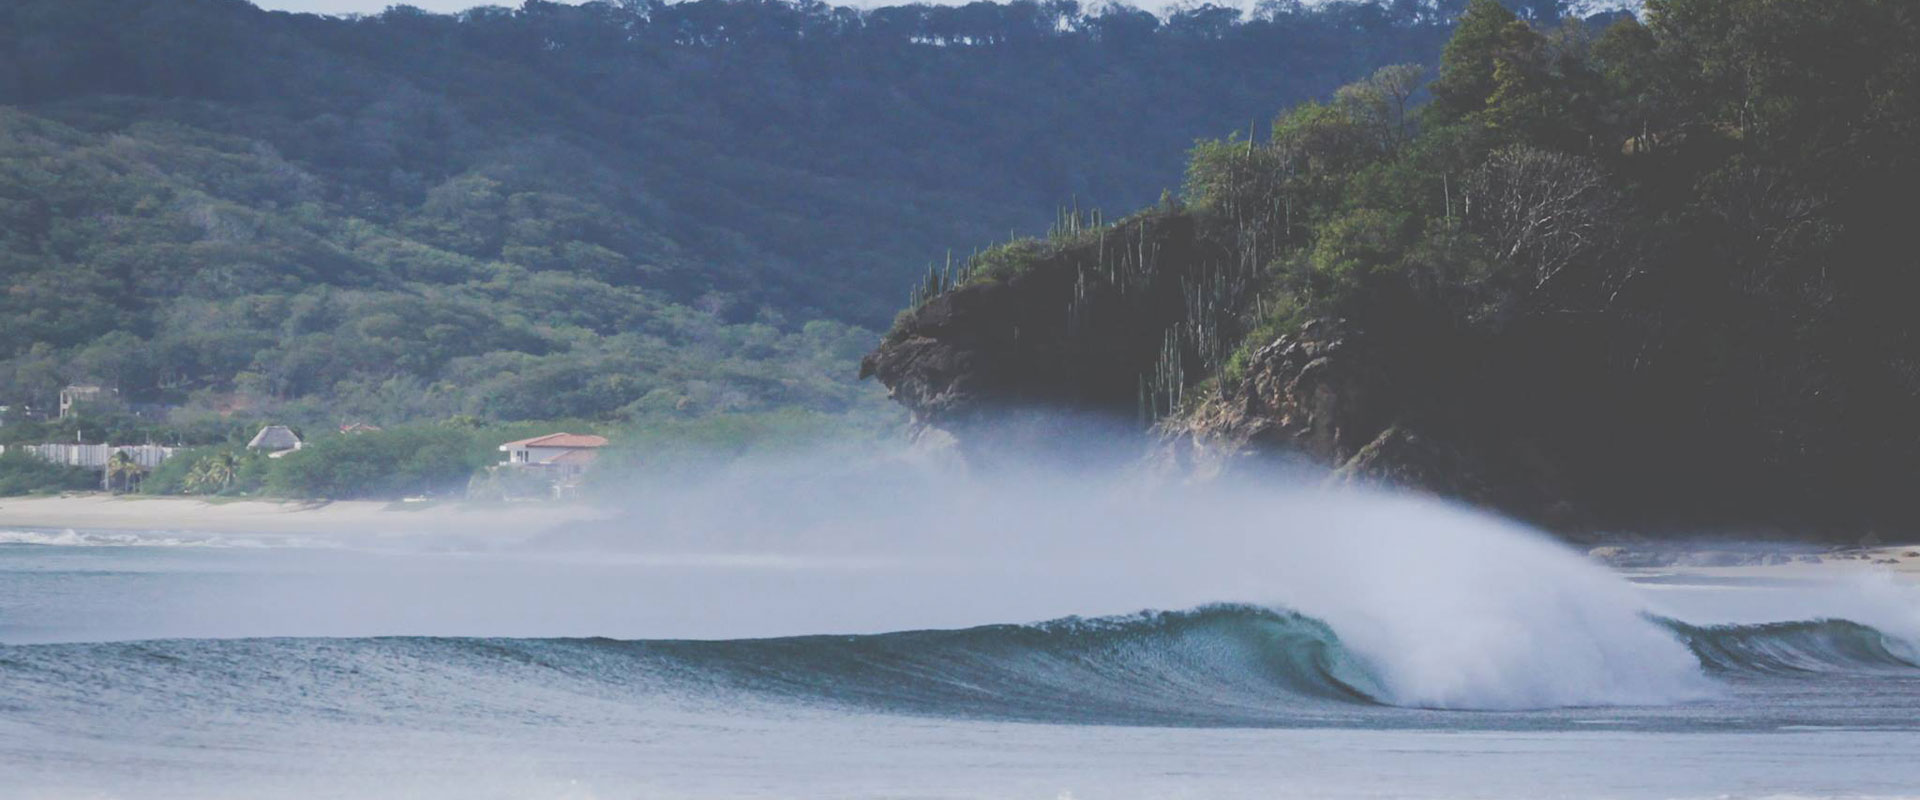 nicaragua-surf-expedition-surf camp